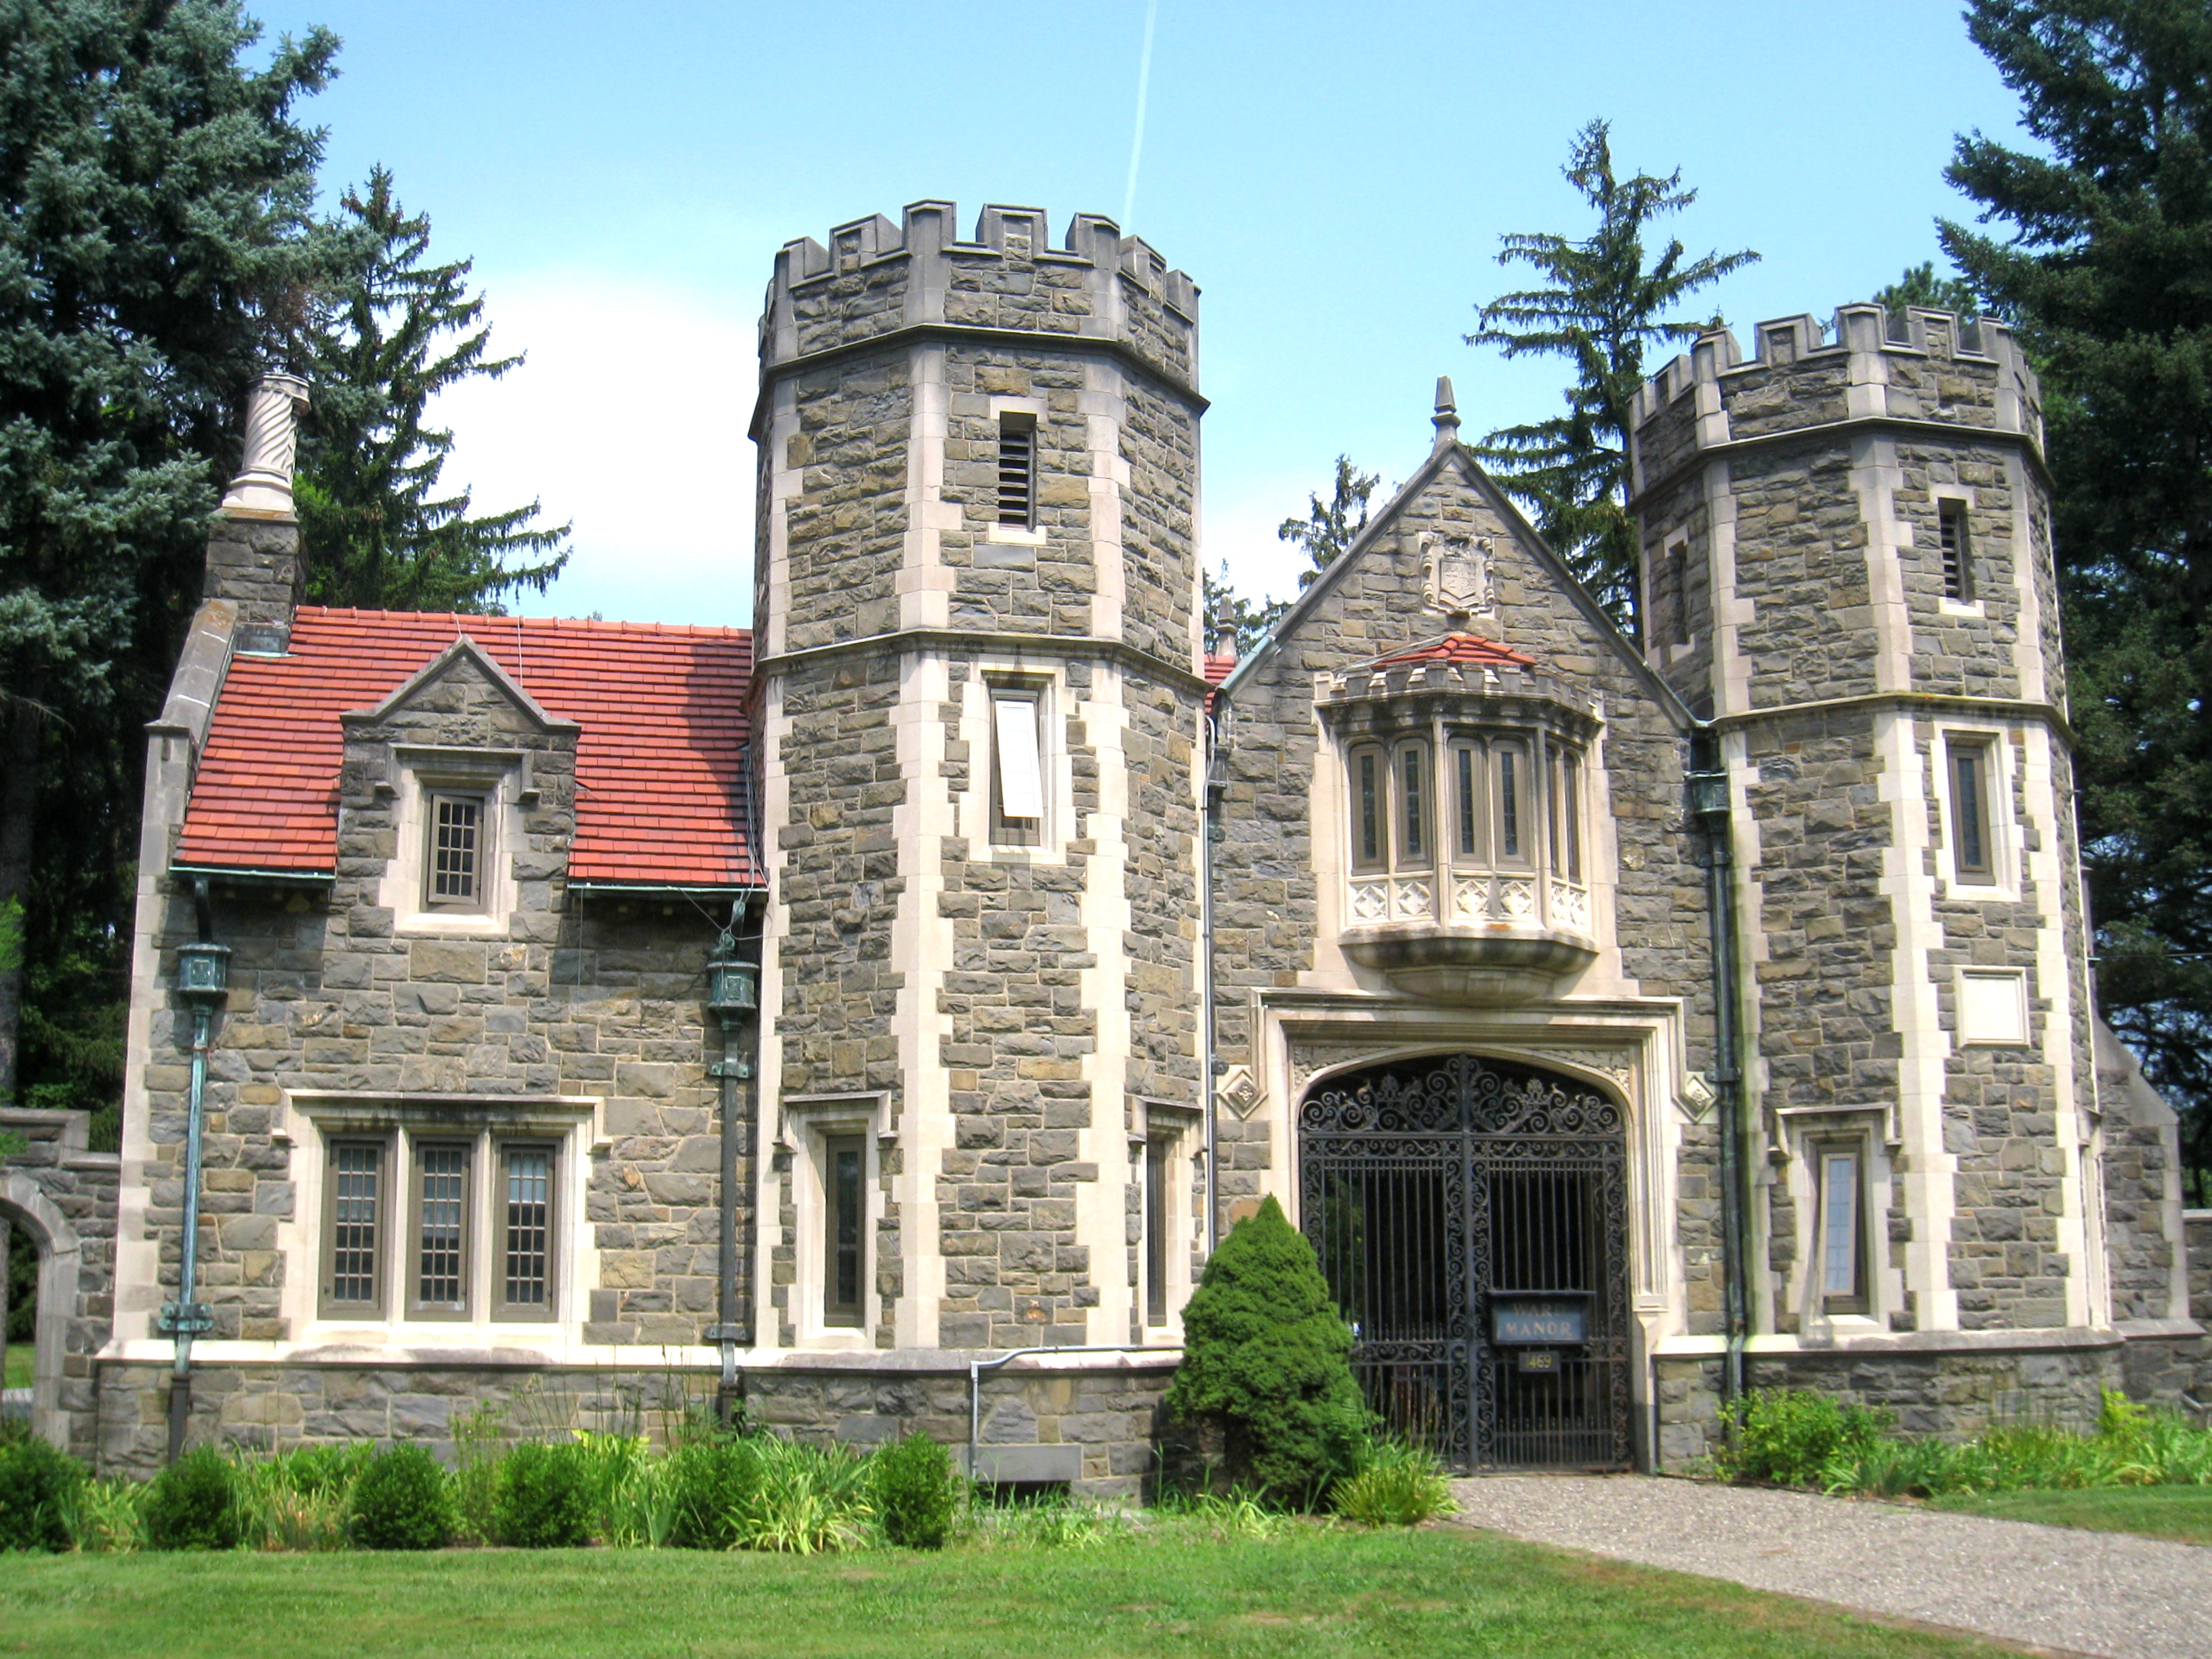 annandale on hudson online hookup & dating Bard college offers a rigorous undergraduate curriculum in the liberal arts and  sciences from its historic 1000-acre campus in the hudson valley of new york.